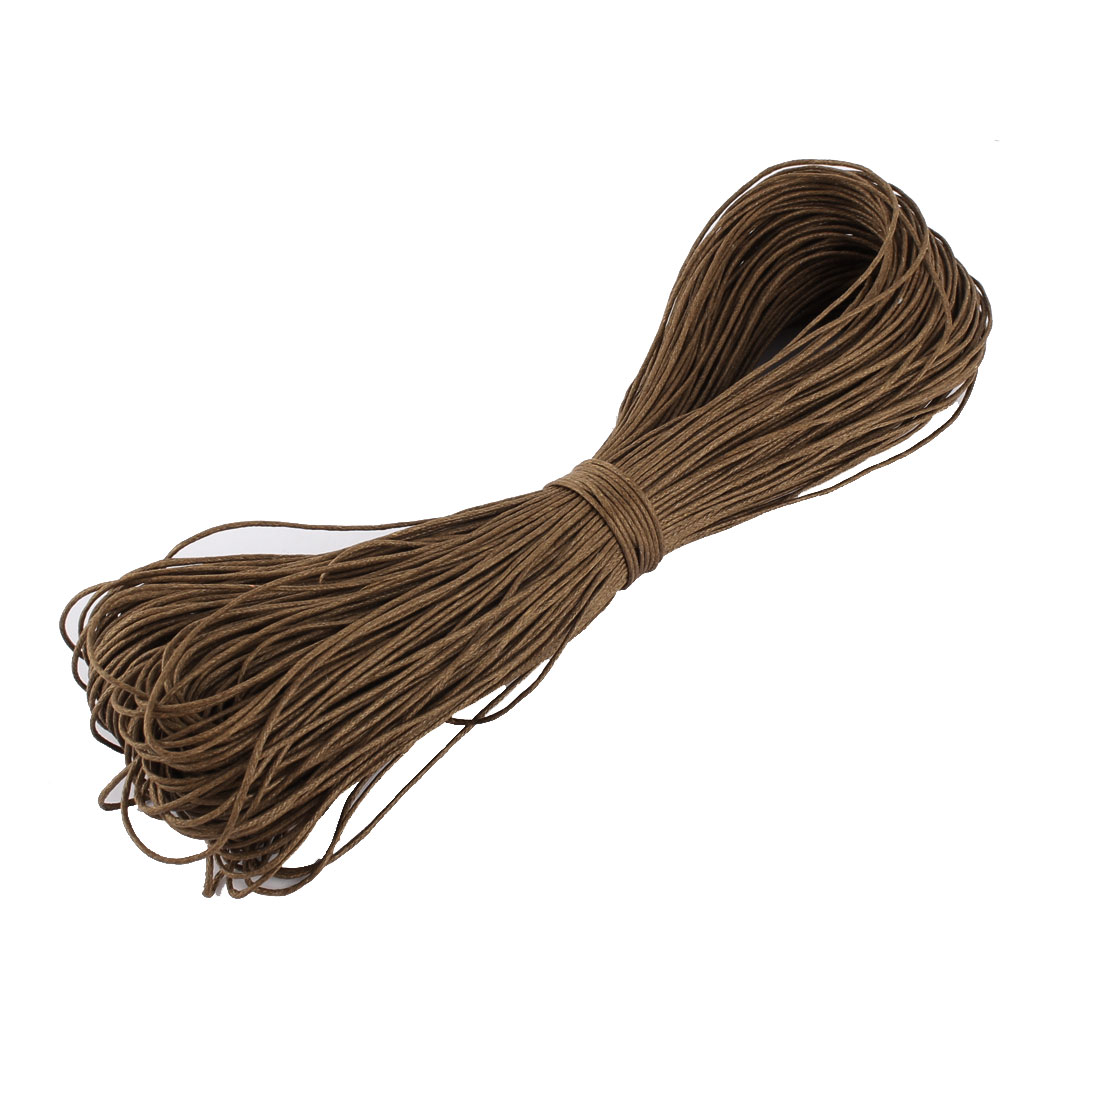 Waxed Cotton String Beading Thread Cord Brown 1mm 87.5 Yard for DIY Bracelet Necklace